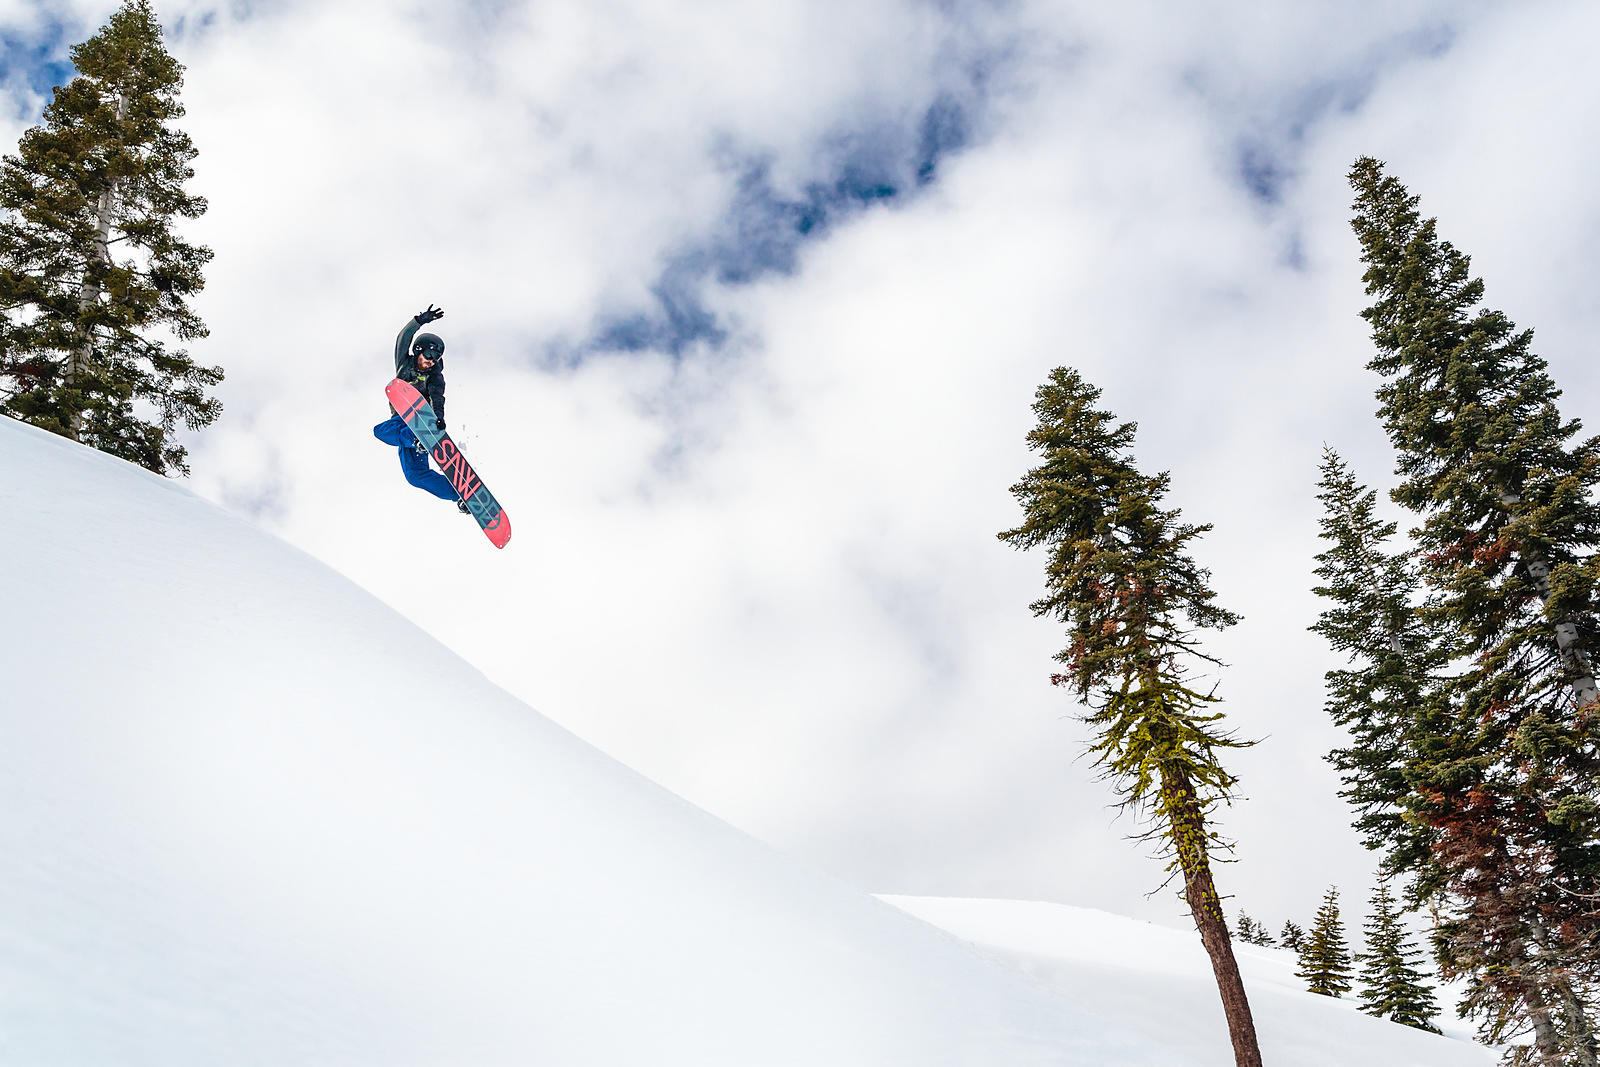 Owen_Roth_Photography-February_21_2016-Split_Board_Lassen-9201-Edit2-00001